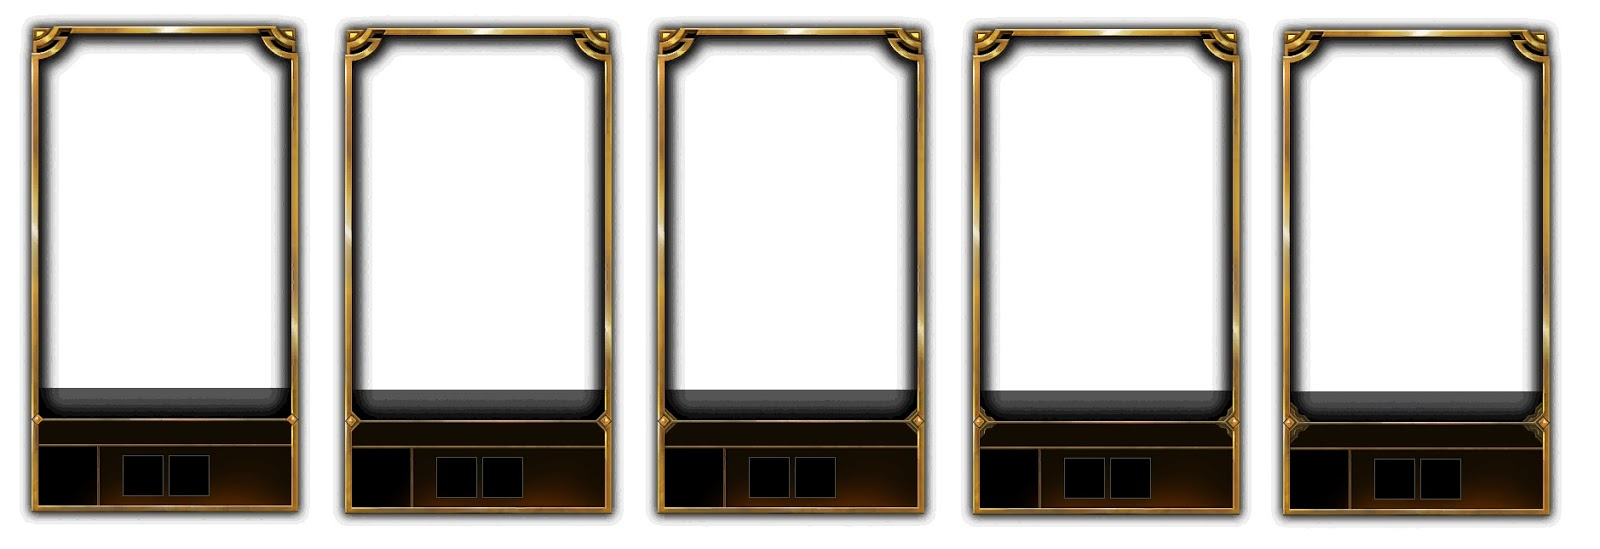 Lol how to get gold frame